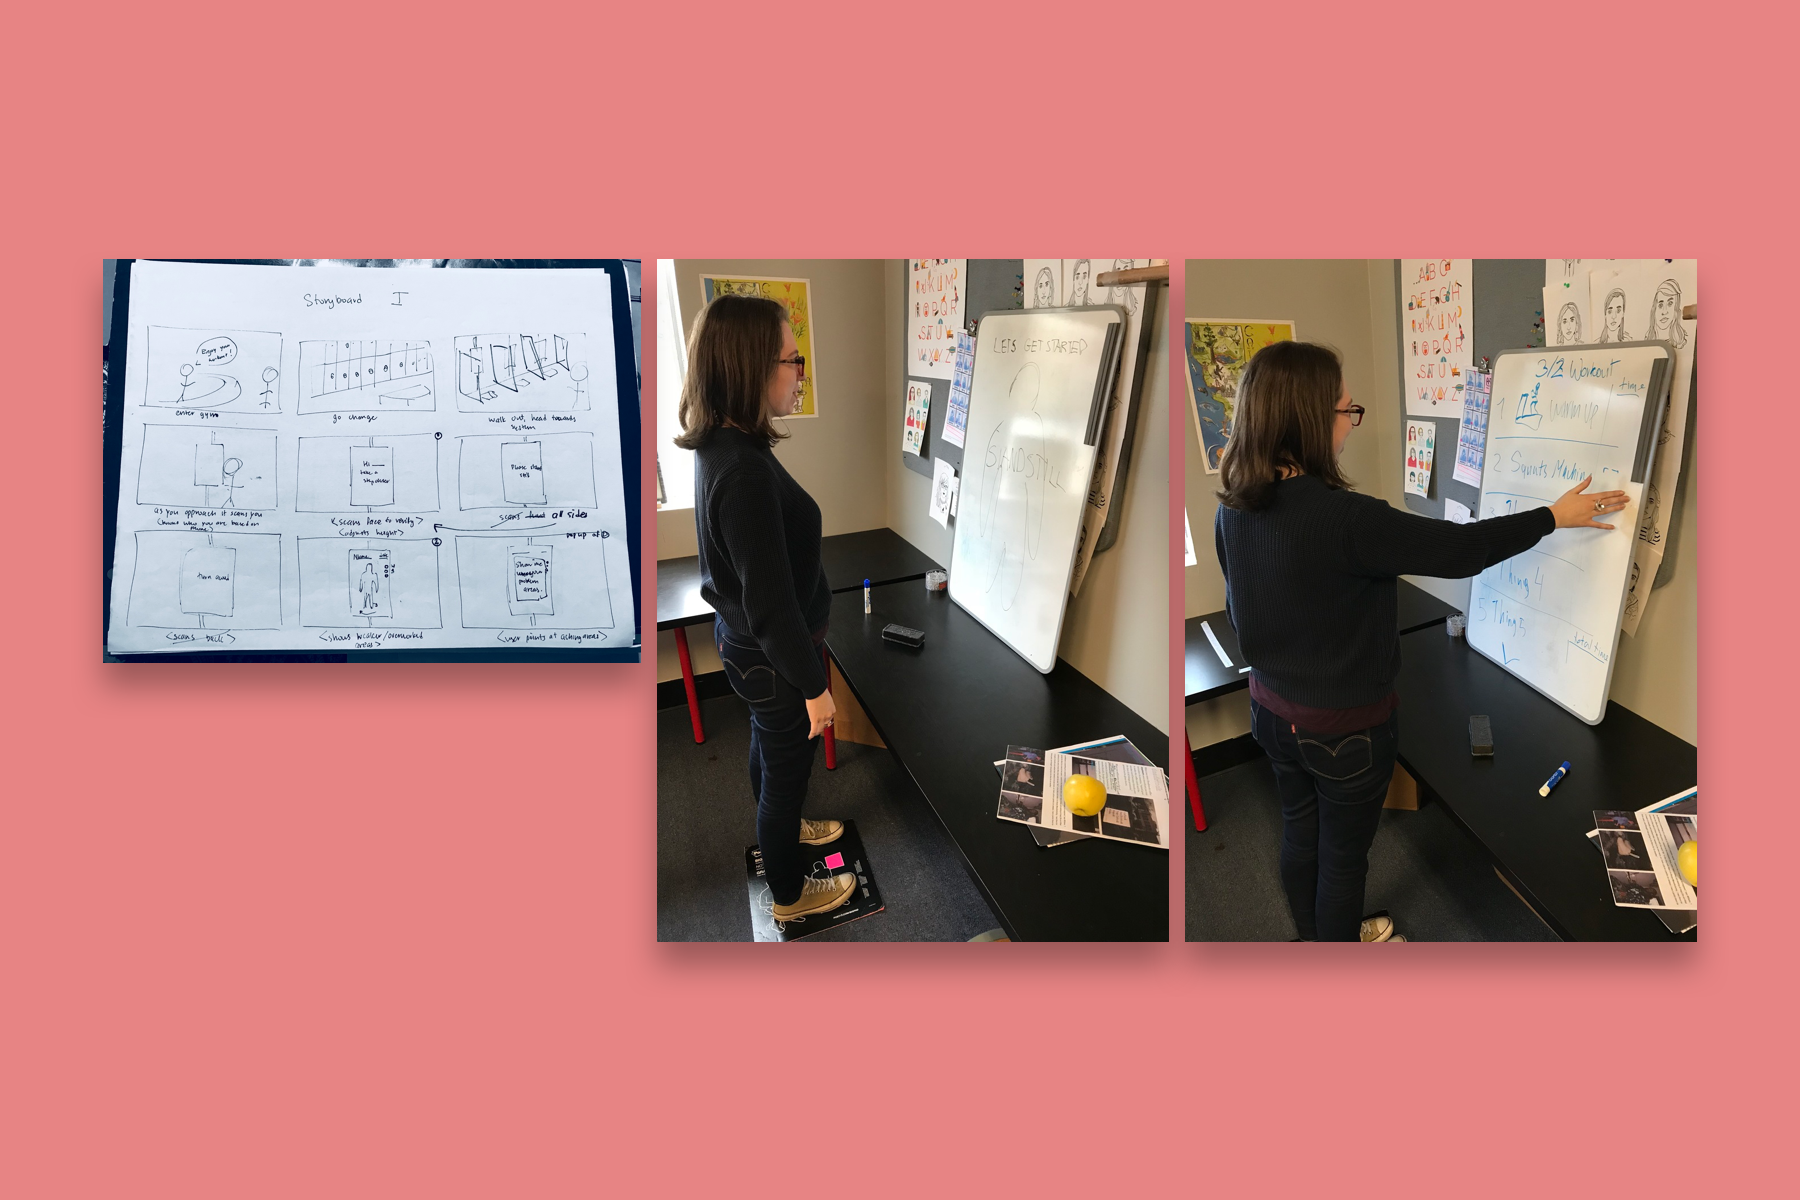 Eileen Ewing helping her classmate Maryana Kuznetsova prototype out her interactive gym interface based on her storyboarding.